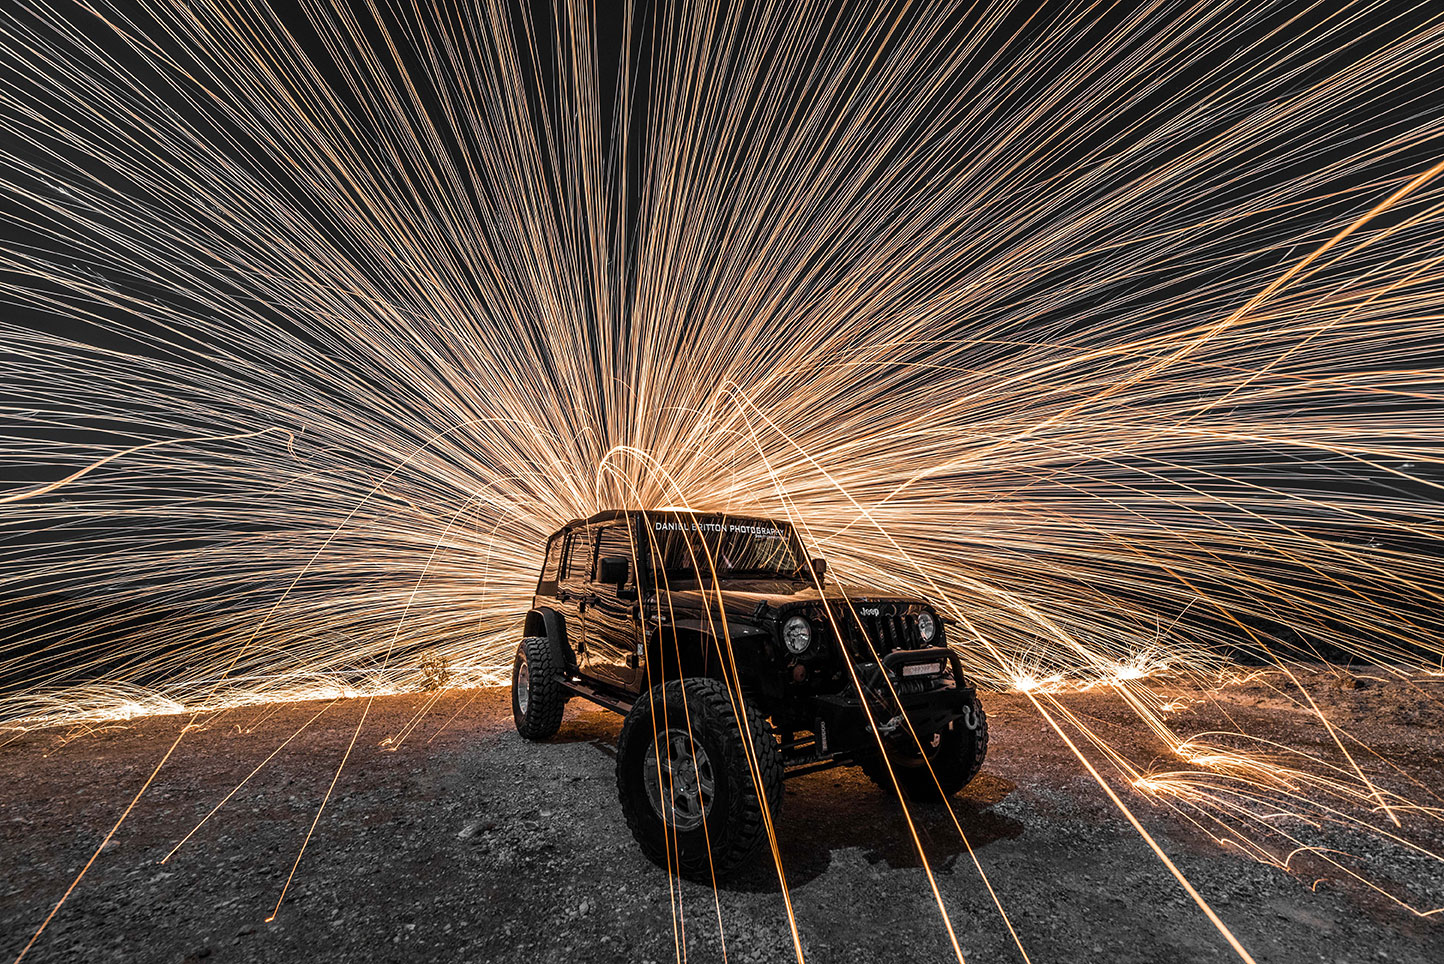 Steel Wool Photography, Jeep Wrangler, Night, Automobile, Adventure Lifestyle Photographer Daniel Britton